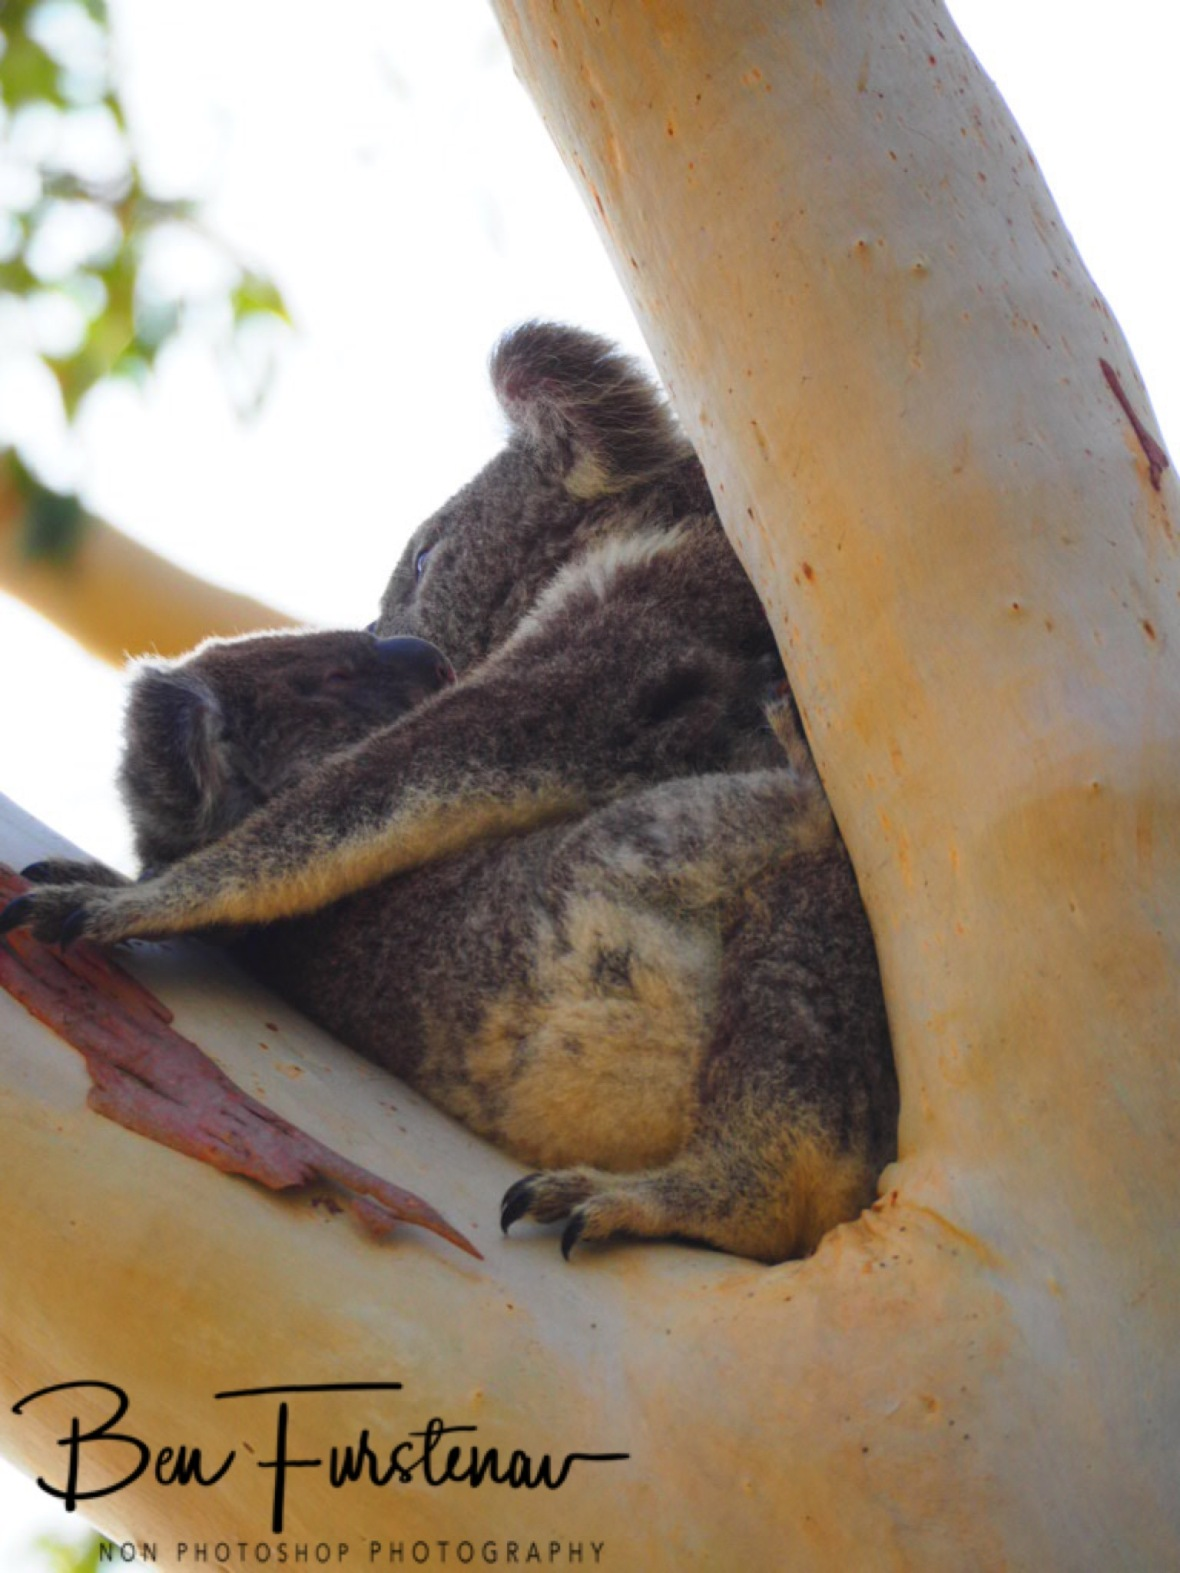 a very young koala appeared at Woodburn, Northern New South Wales, Australia